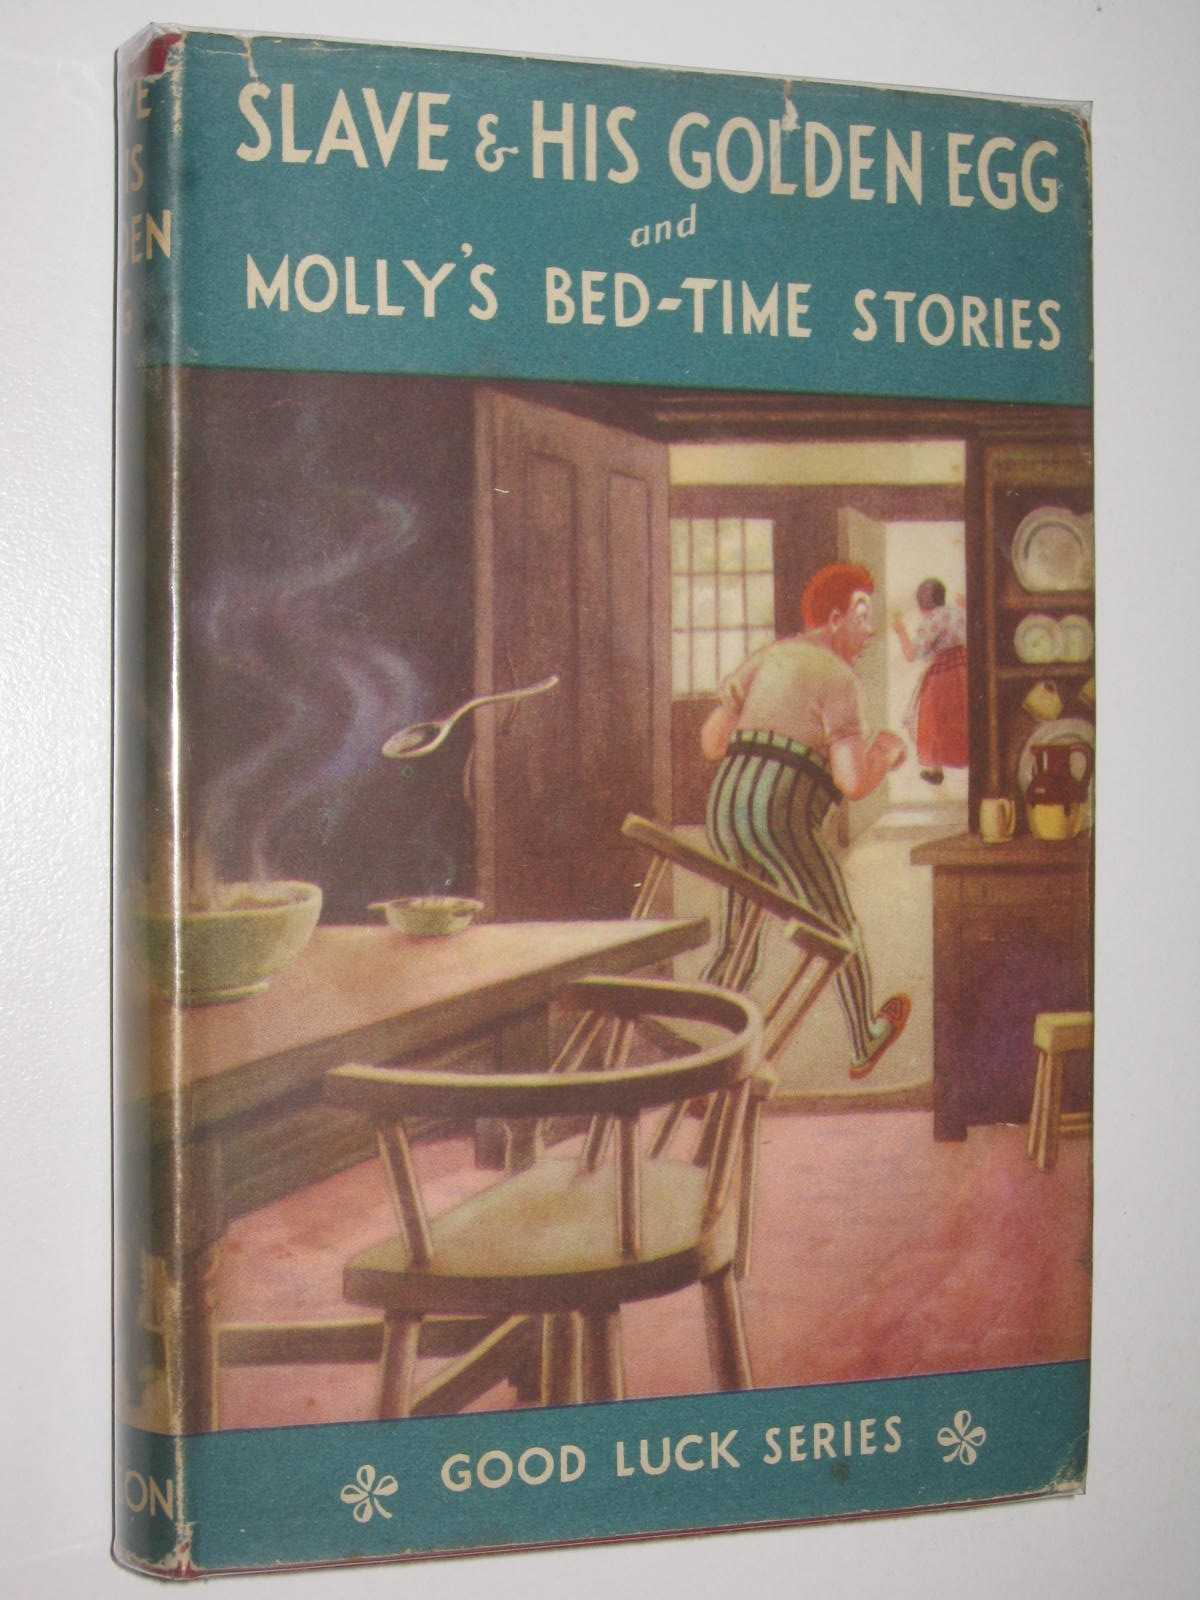 Image for Slave and His Golden Egg + Molly's Bed-Time Stories - Good Luck Series #6